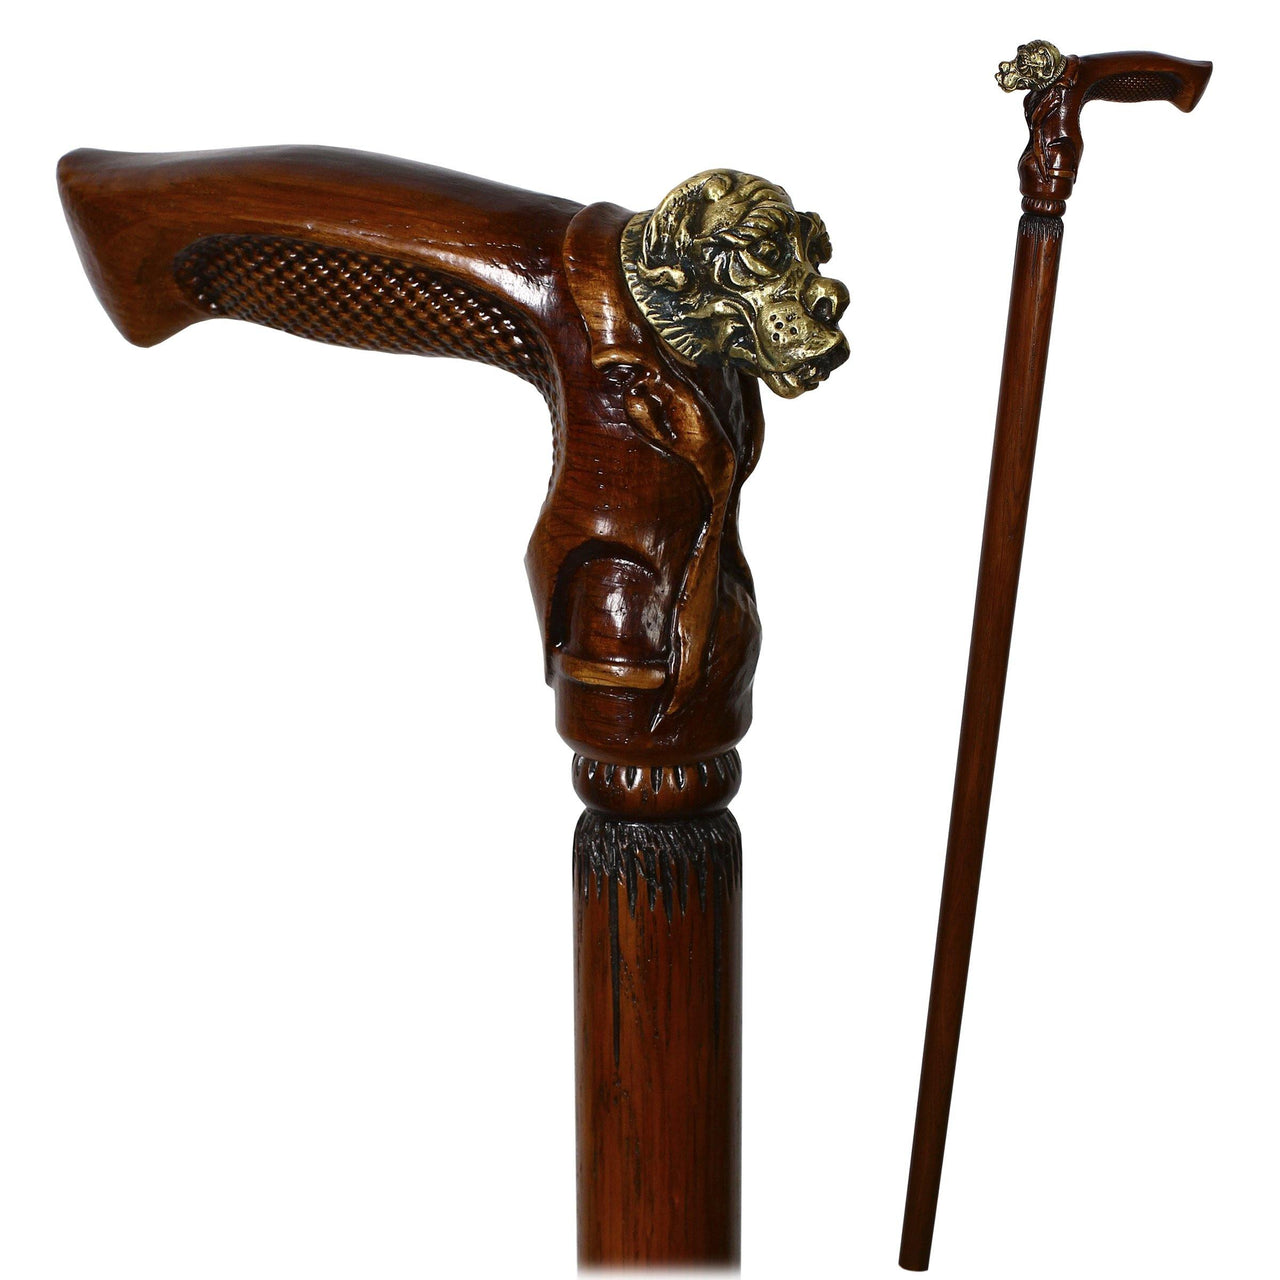 Bull Dog Solid Brass & Wood Walking Stick Cane - GC-Artis Walking Sticks Canes